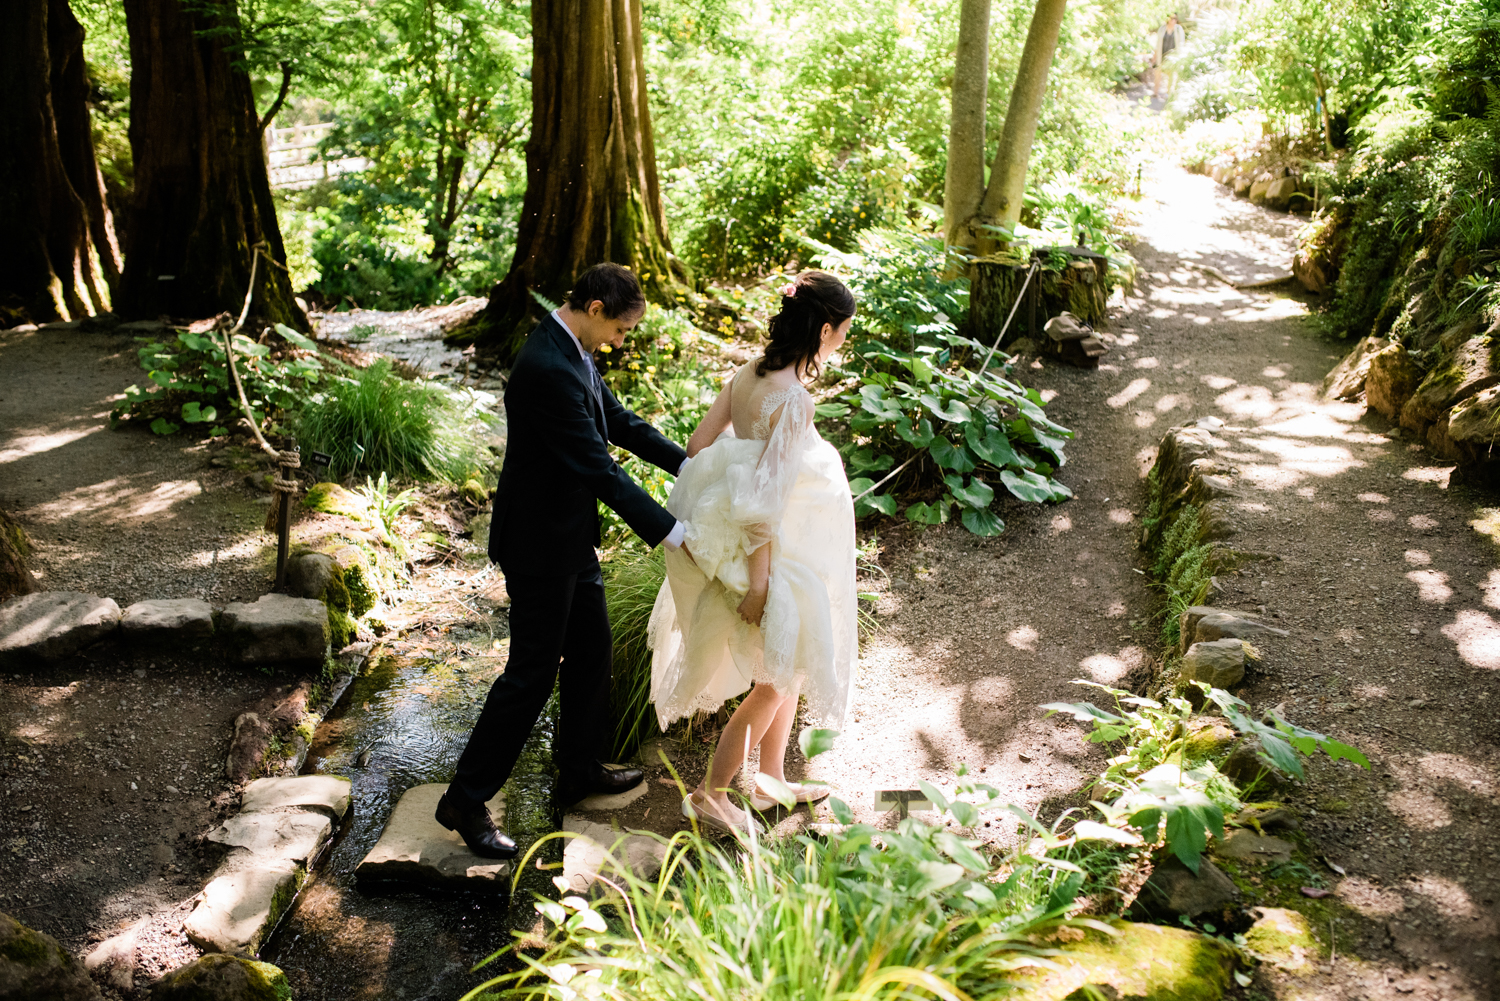 UC_Berkeley_Botanical_Garden_Wedding_ChristinaRichards_005.jpg